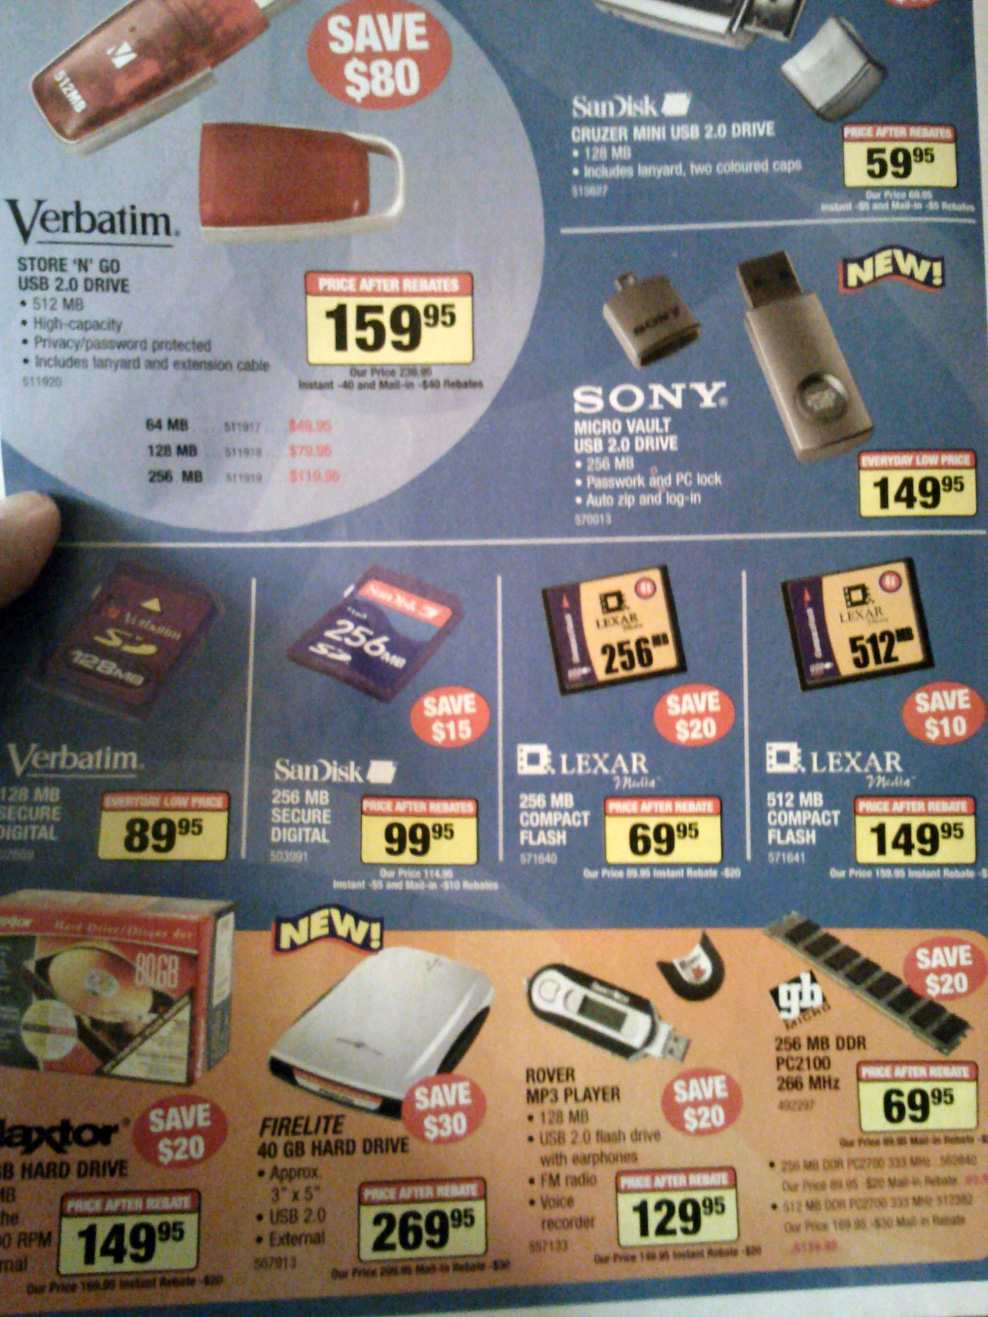 2004 USB prices